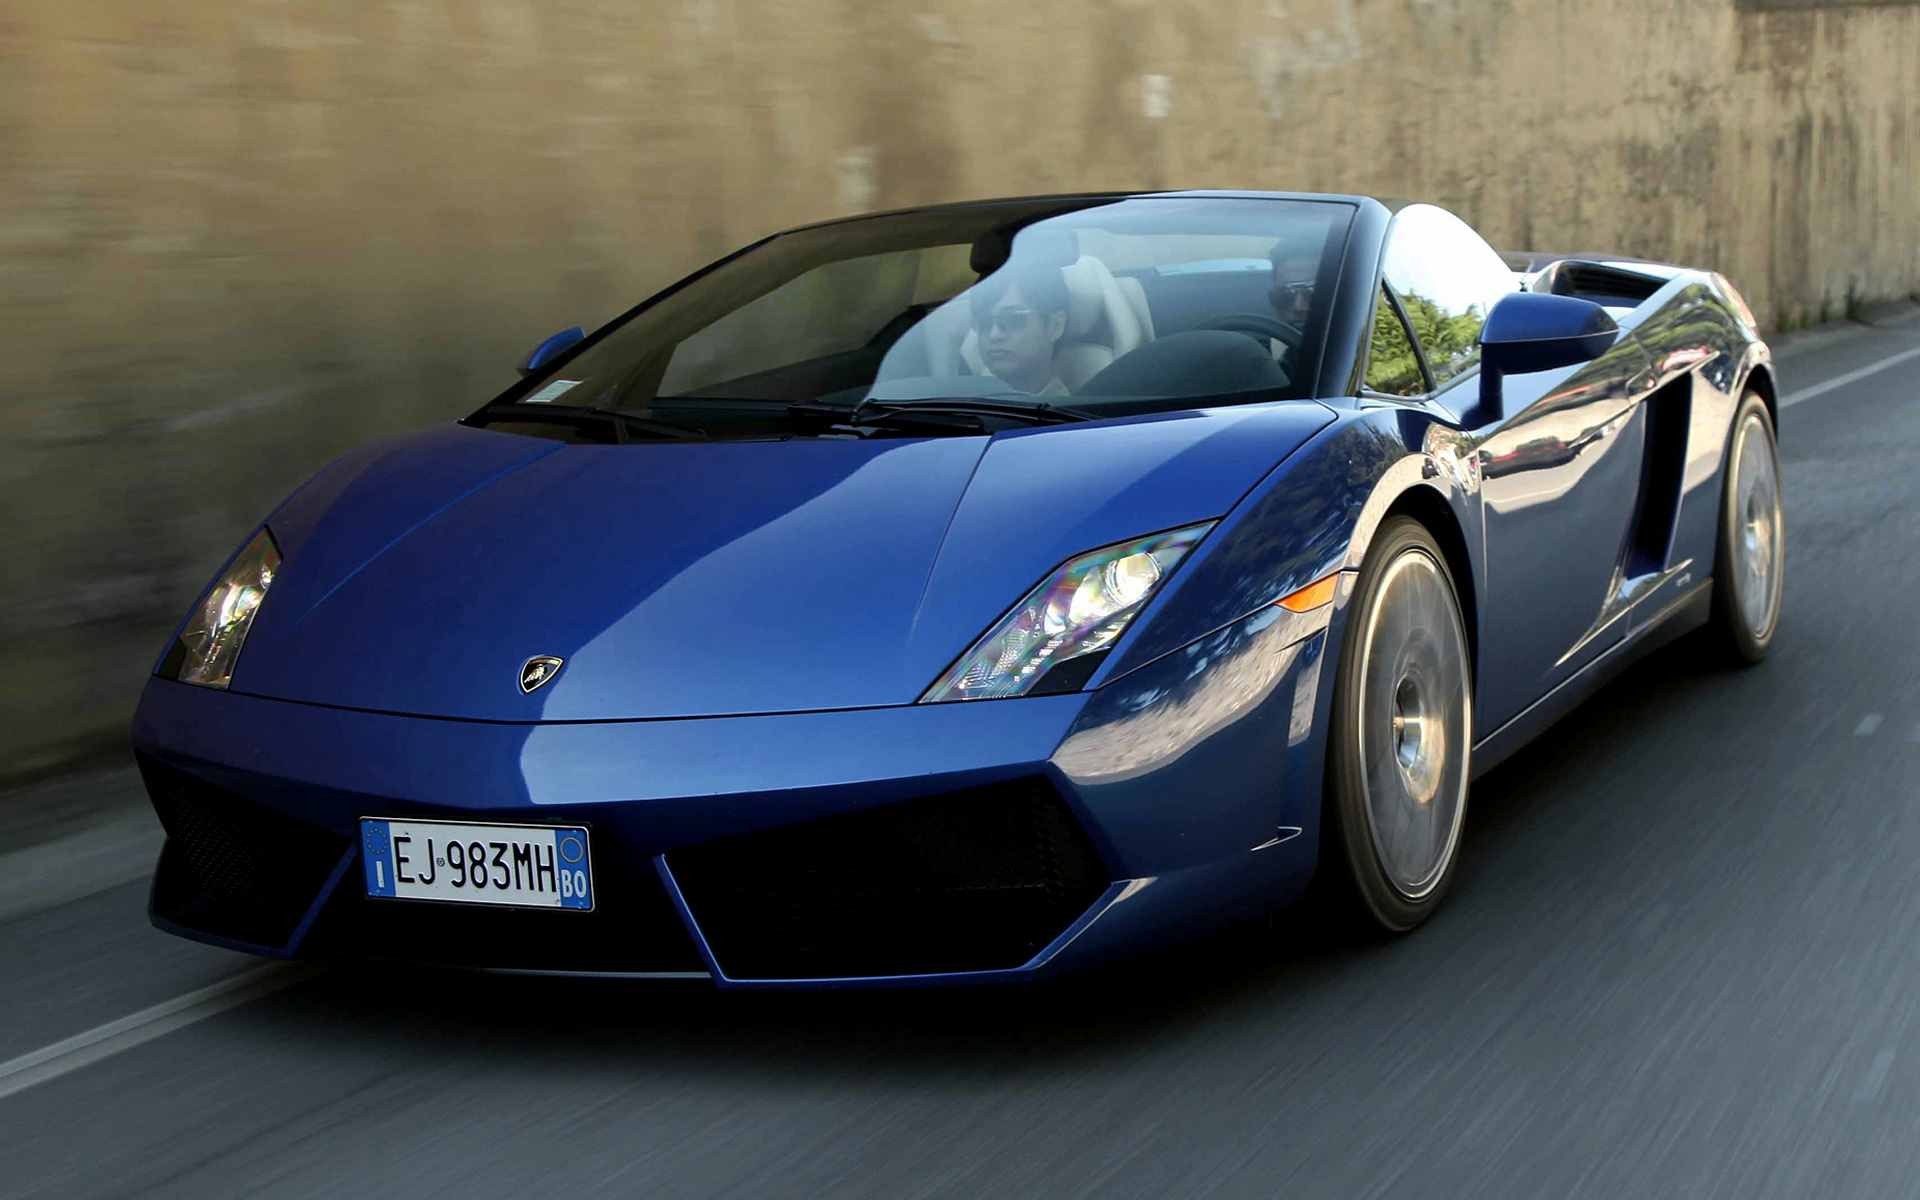 Gallardo Car Hd Wallpapers 2012 Lamborghini Gallardo Lp 550 2 Spyder Wallpapers And